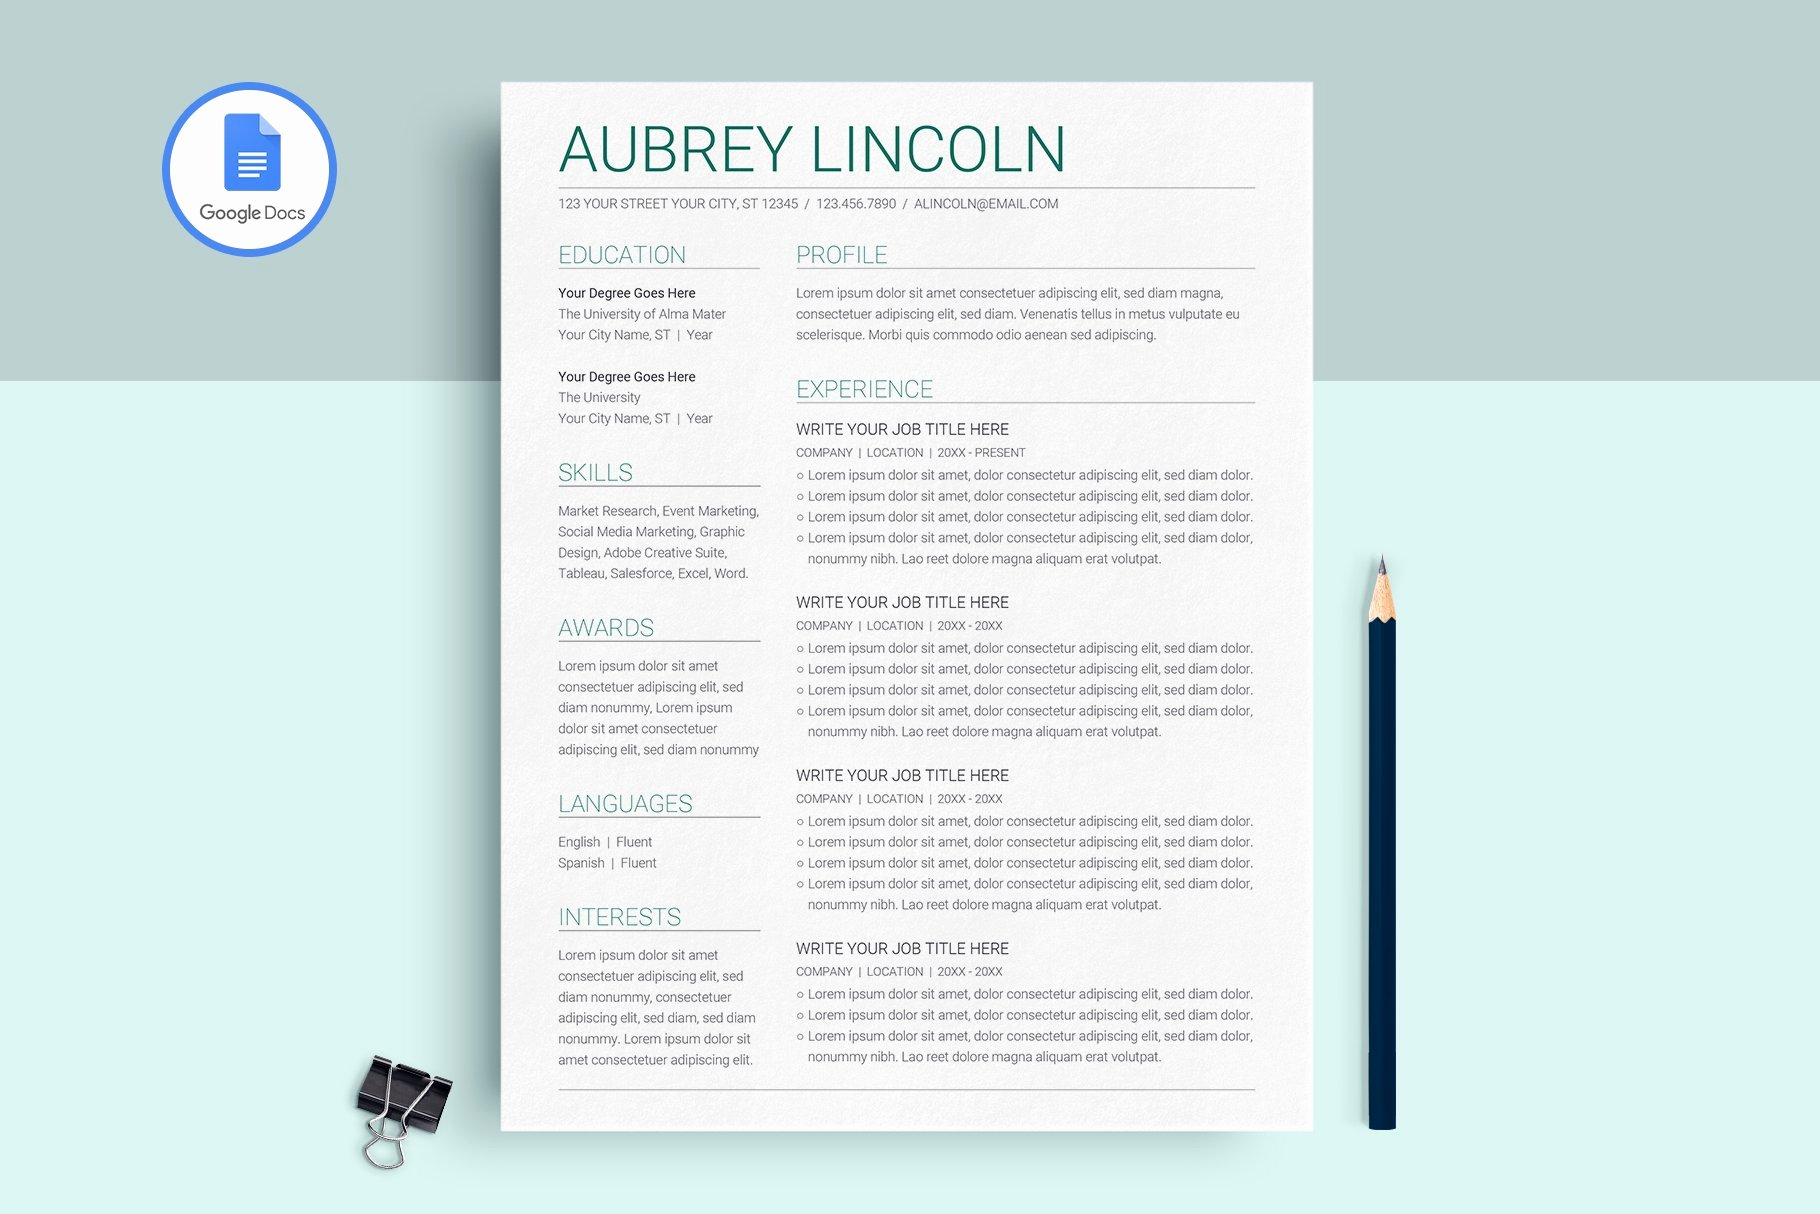 Magazine Template Google Docs Fresh Google Docs Resume Template Resume Templates Creative